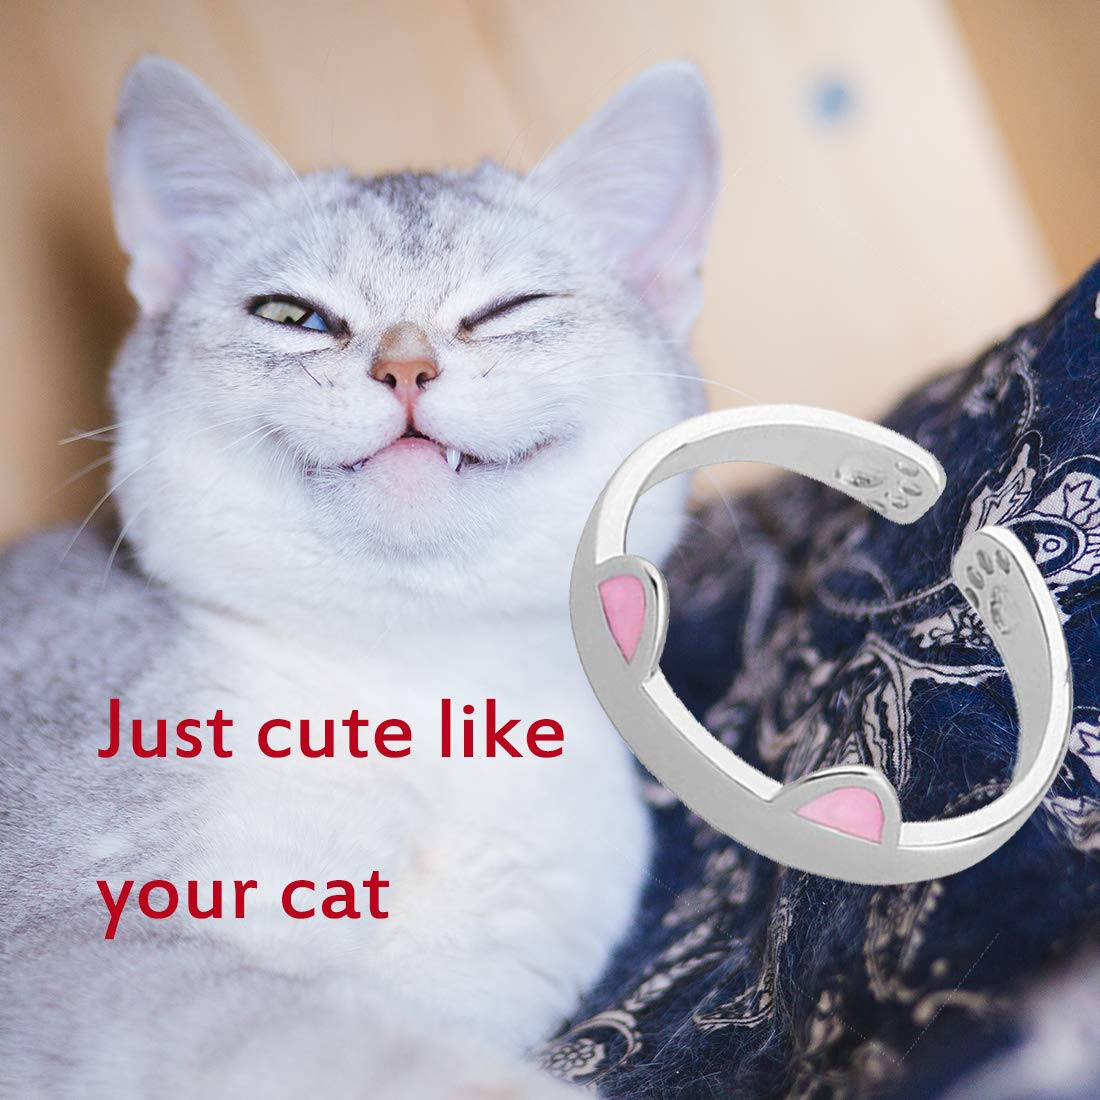 Zuo Bao Cute Cat Ring Adjustable Ring Pink Cat Ears Ring Funny Cat Jewelry Gift for Her Cat Hoop Ring Kitty Mini-Hoop Feline Lovers Gift Funny Birthday Gift cat-Ring